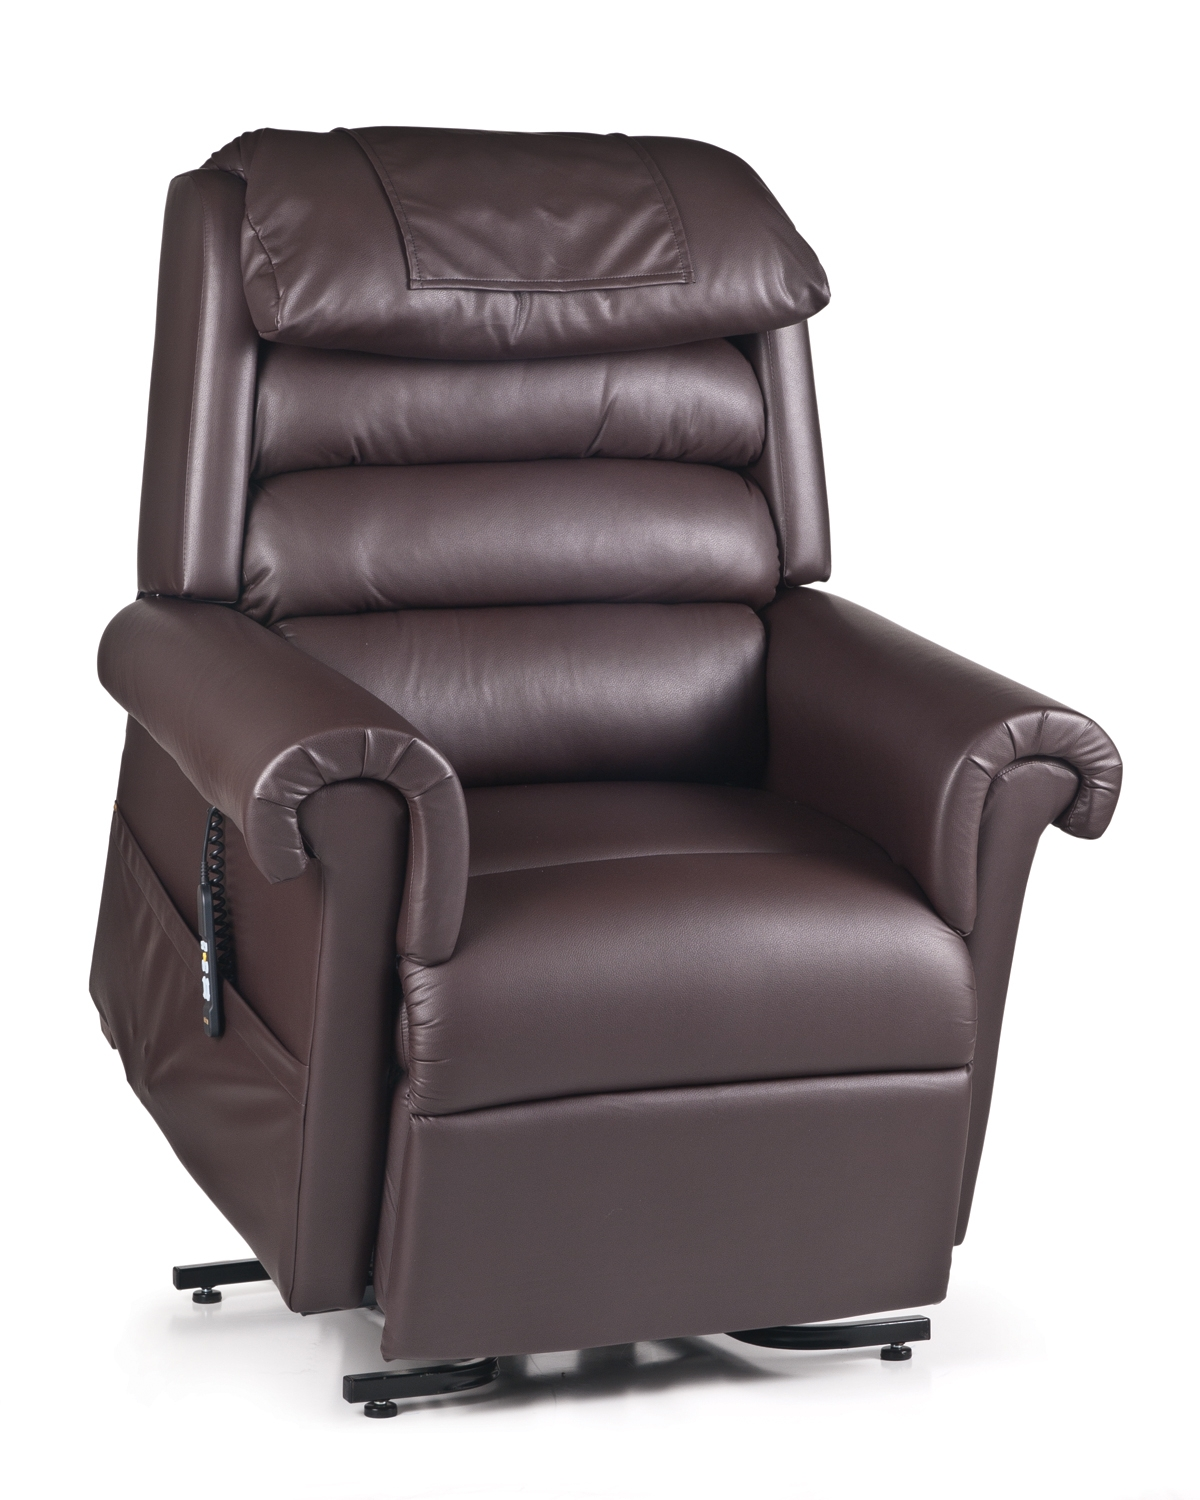 Golden Technologies Relaxer PR756 MaxiComfort Lift Chair